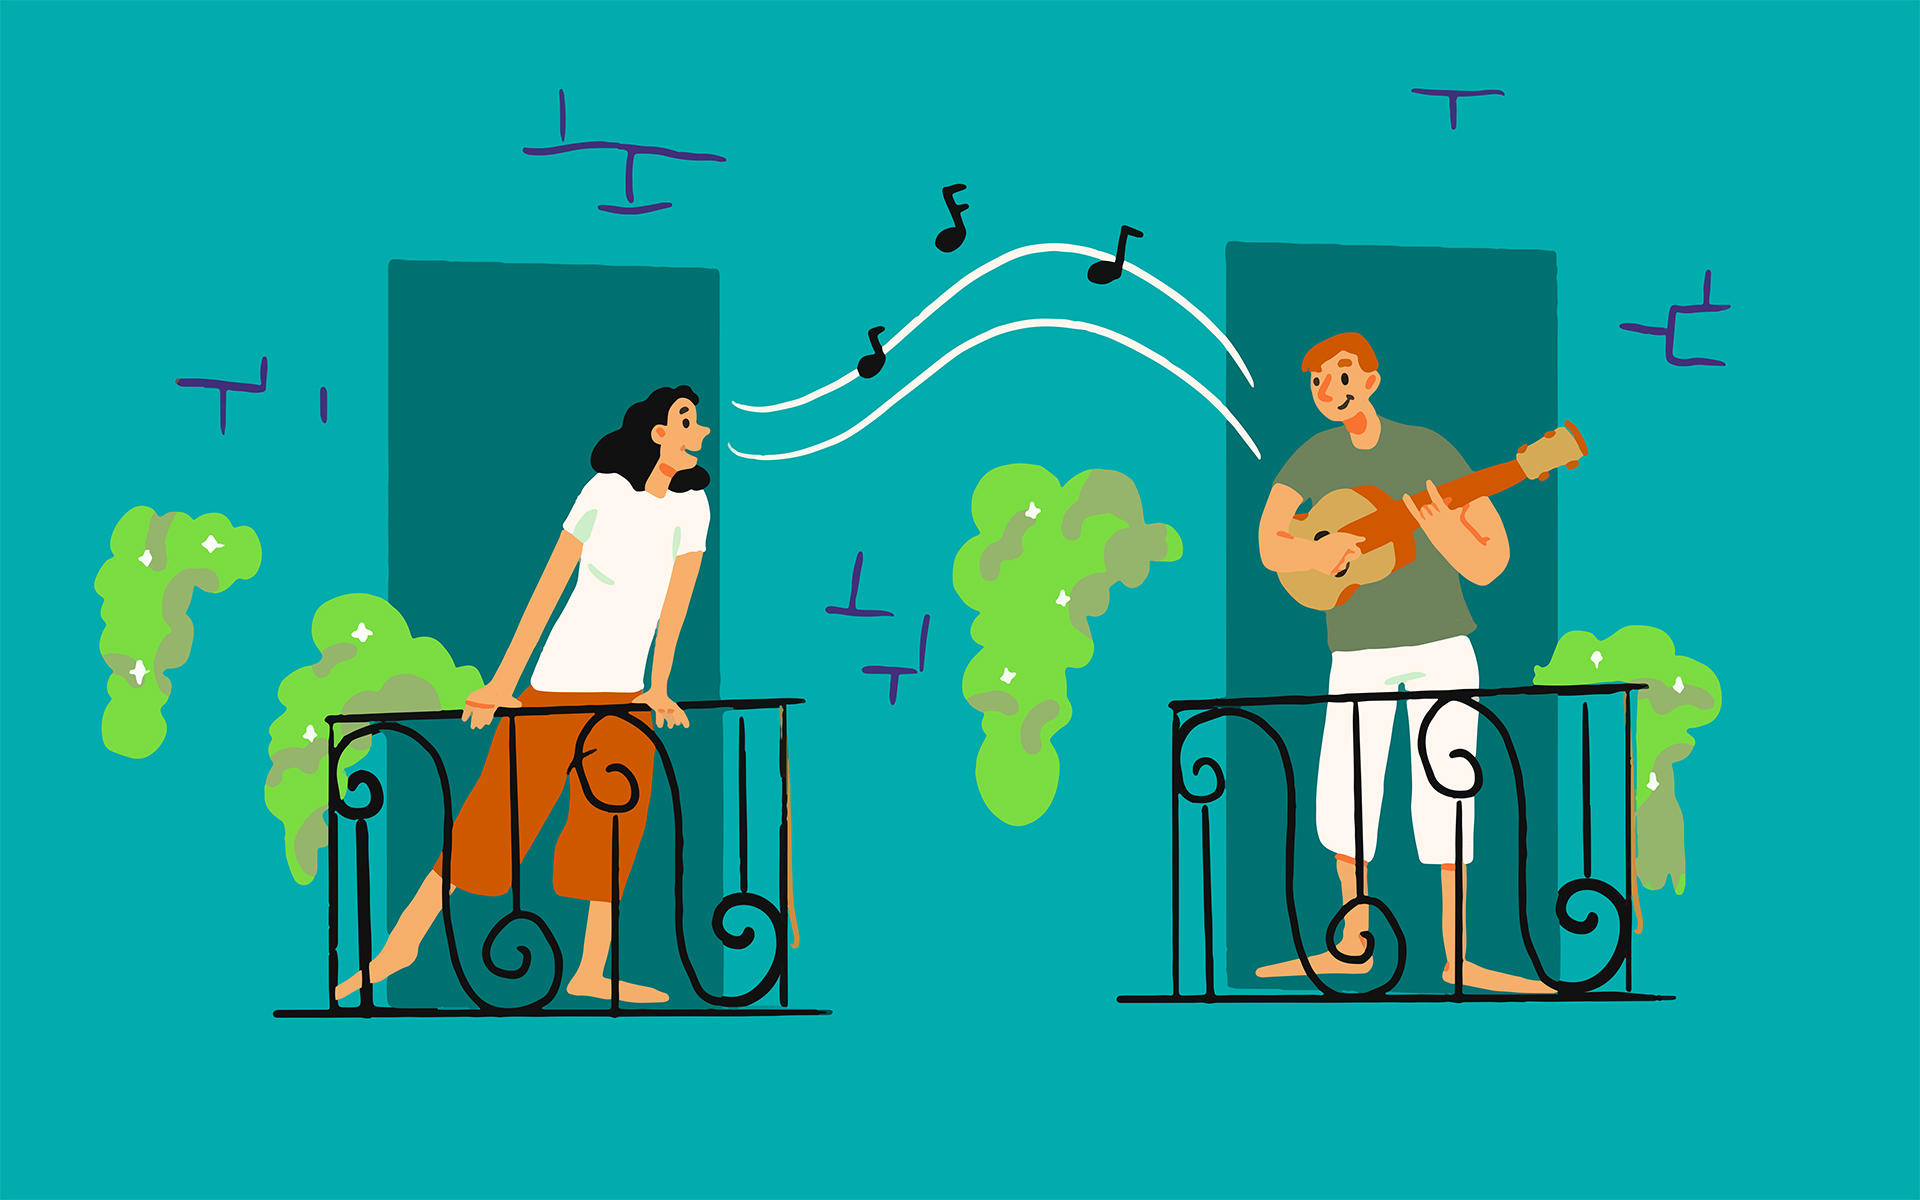 3 Ways to Nurture the Positive in Difficult Times - Illustration of two people on separate balconies singing during COVID-19